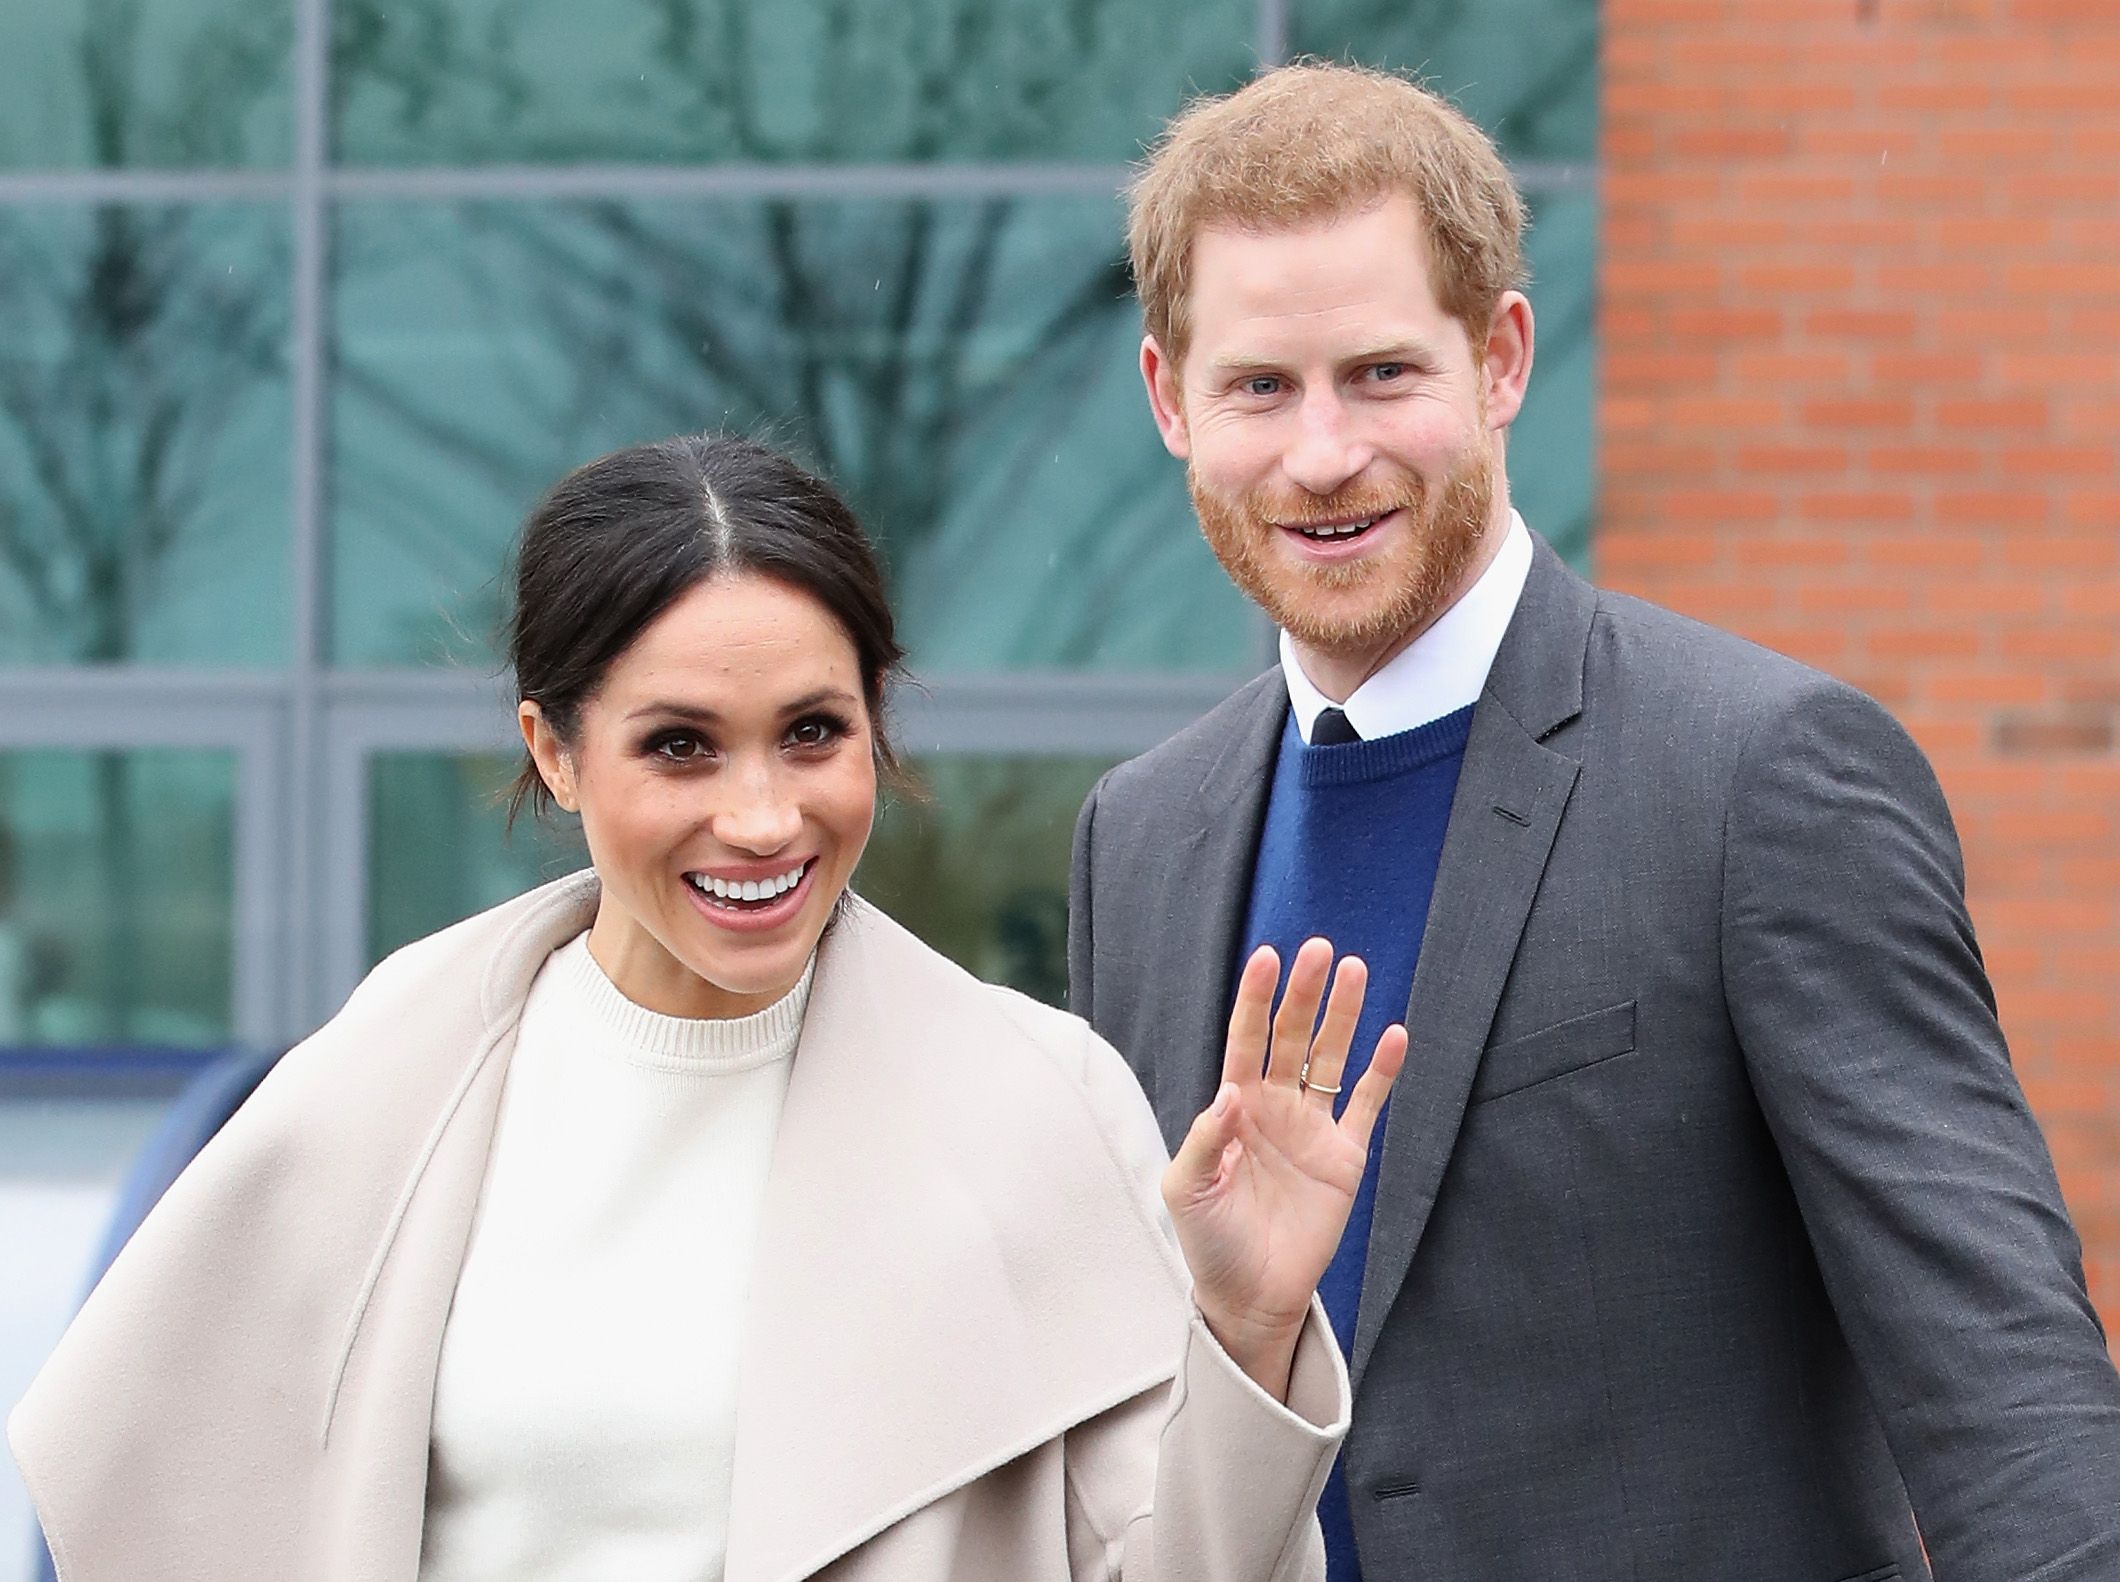 Prince Harry and Meghan Markle depart from Catalyst Inc. on March 23, 2018, in Belfast, Northern Ireland | Photo: Chris Jackson - Pool/Getty Images